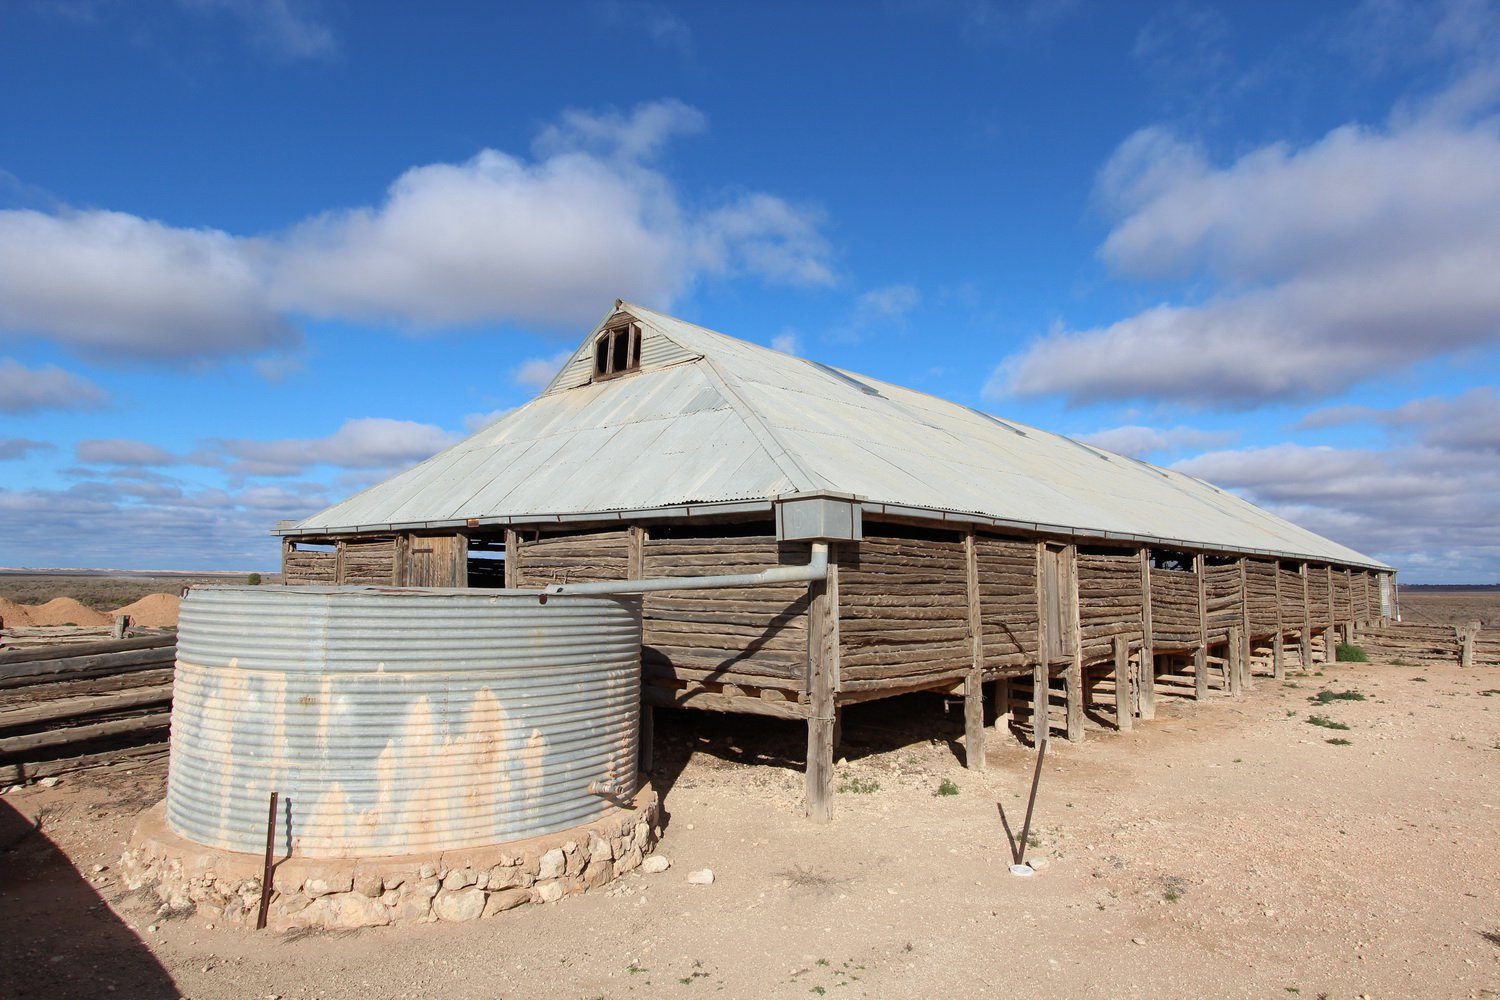 Shearing shed exterior. Mungo National Park. North West Victoria Tour, July 2020.